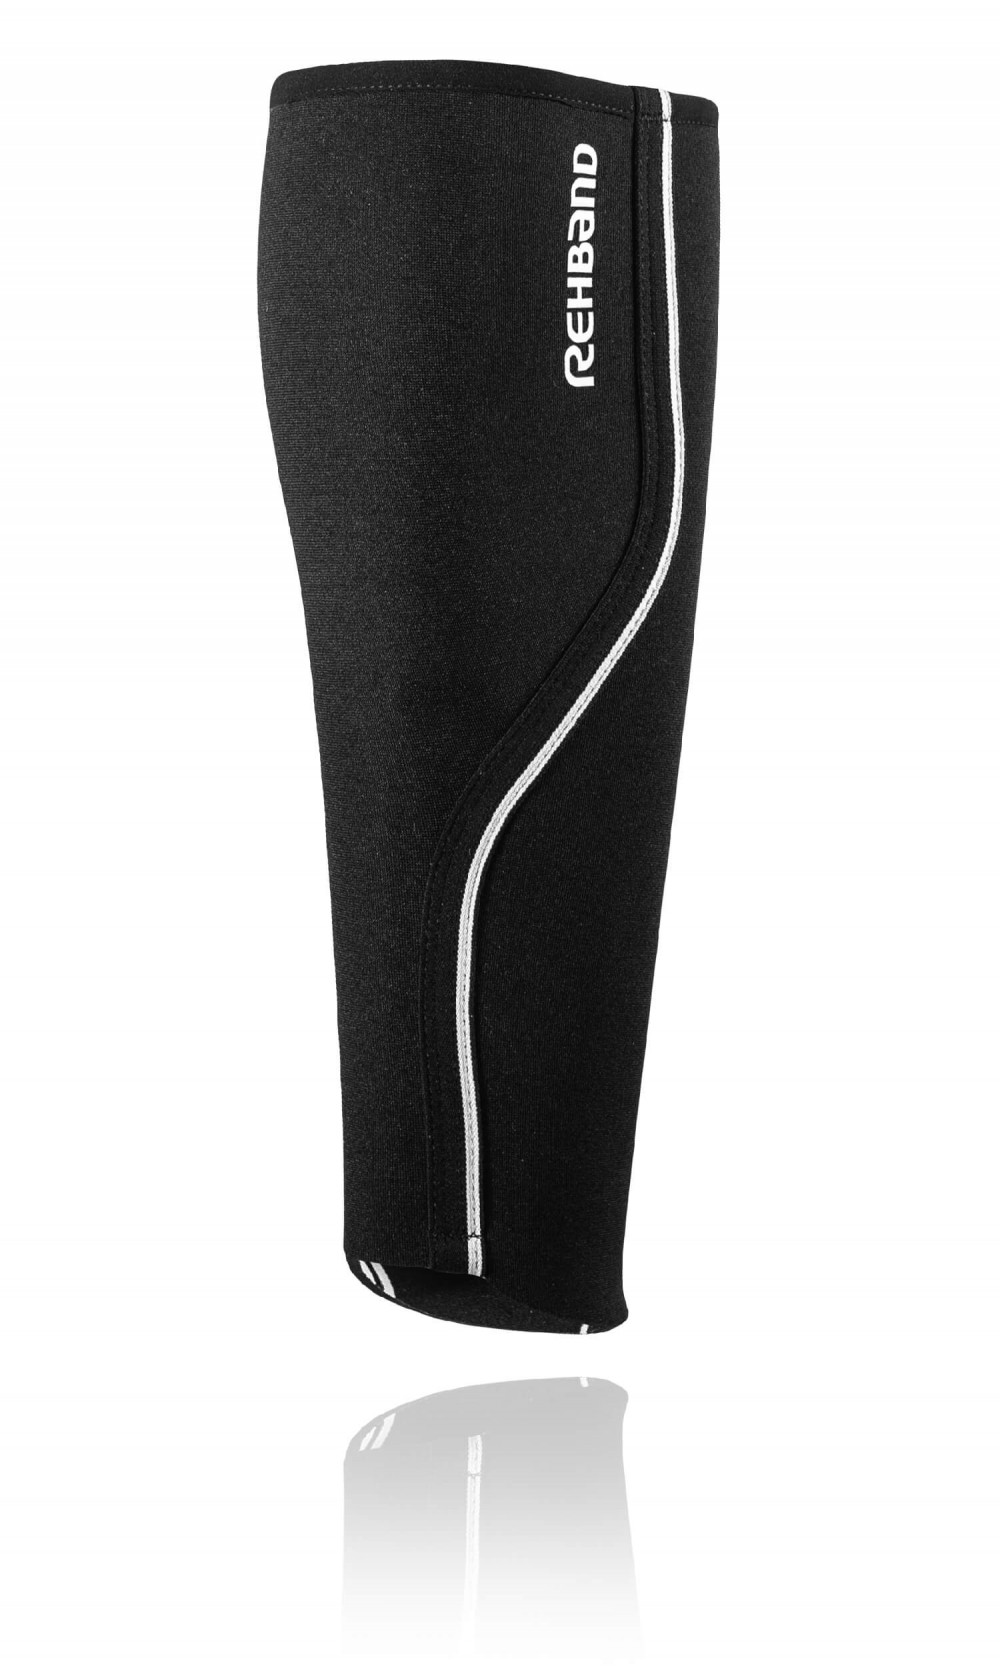 QD Shin & Calf Sleeve 3mm